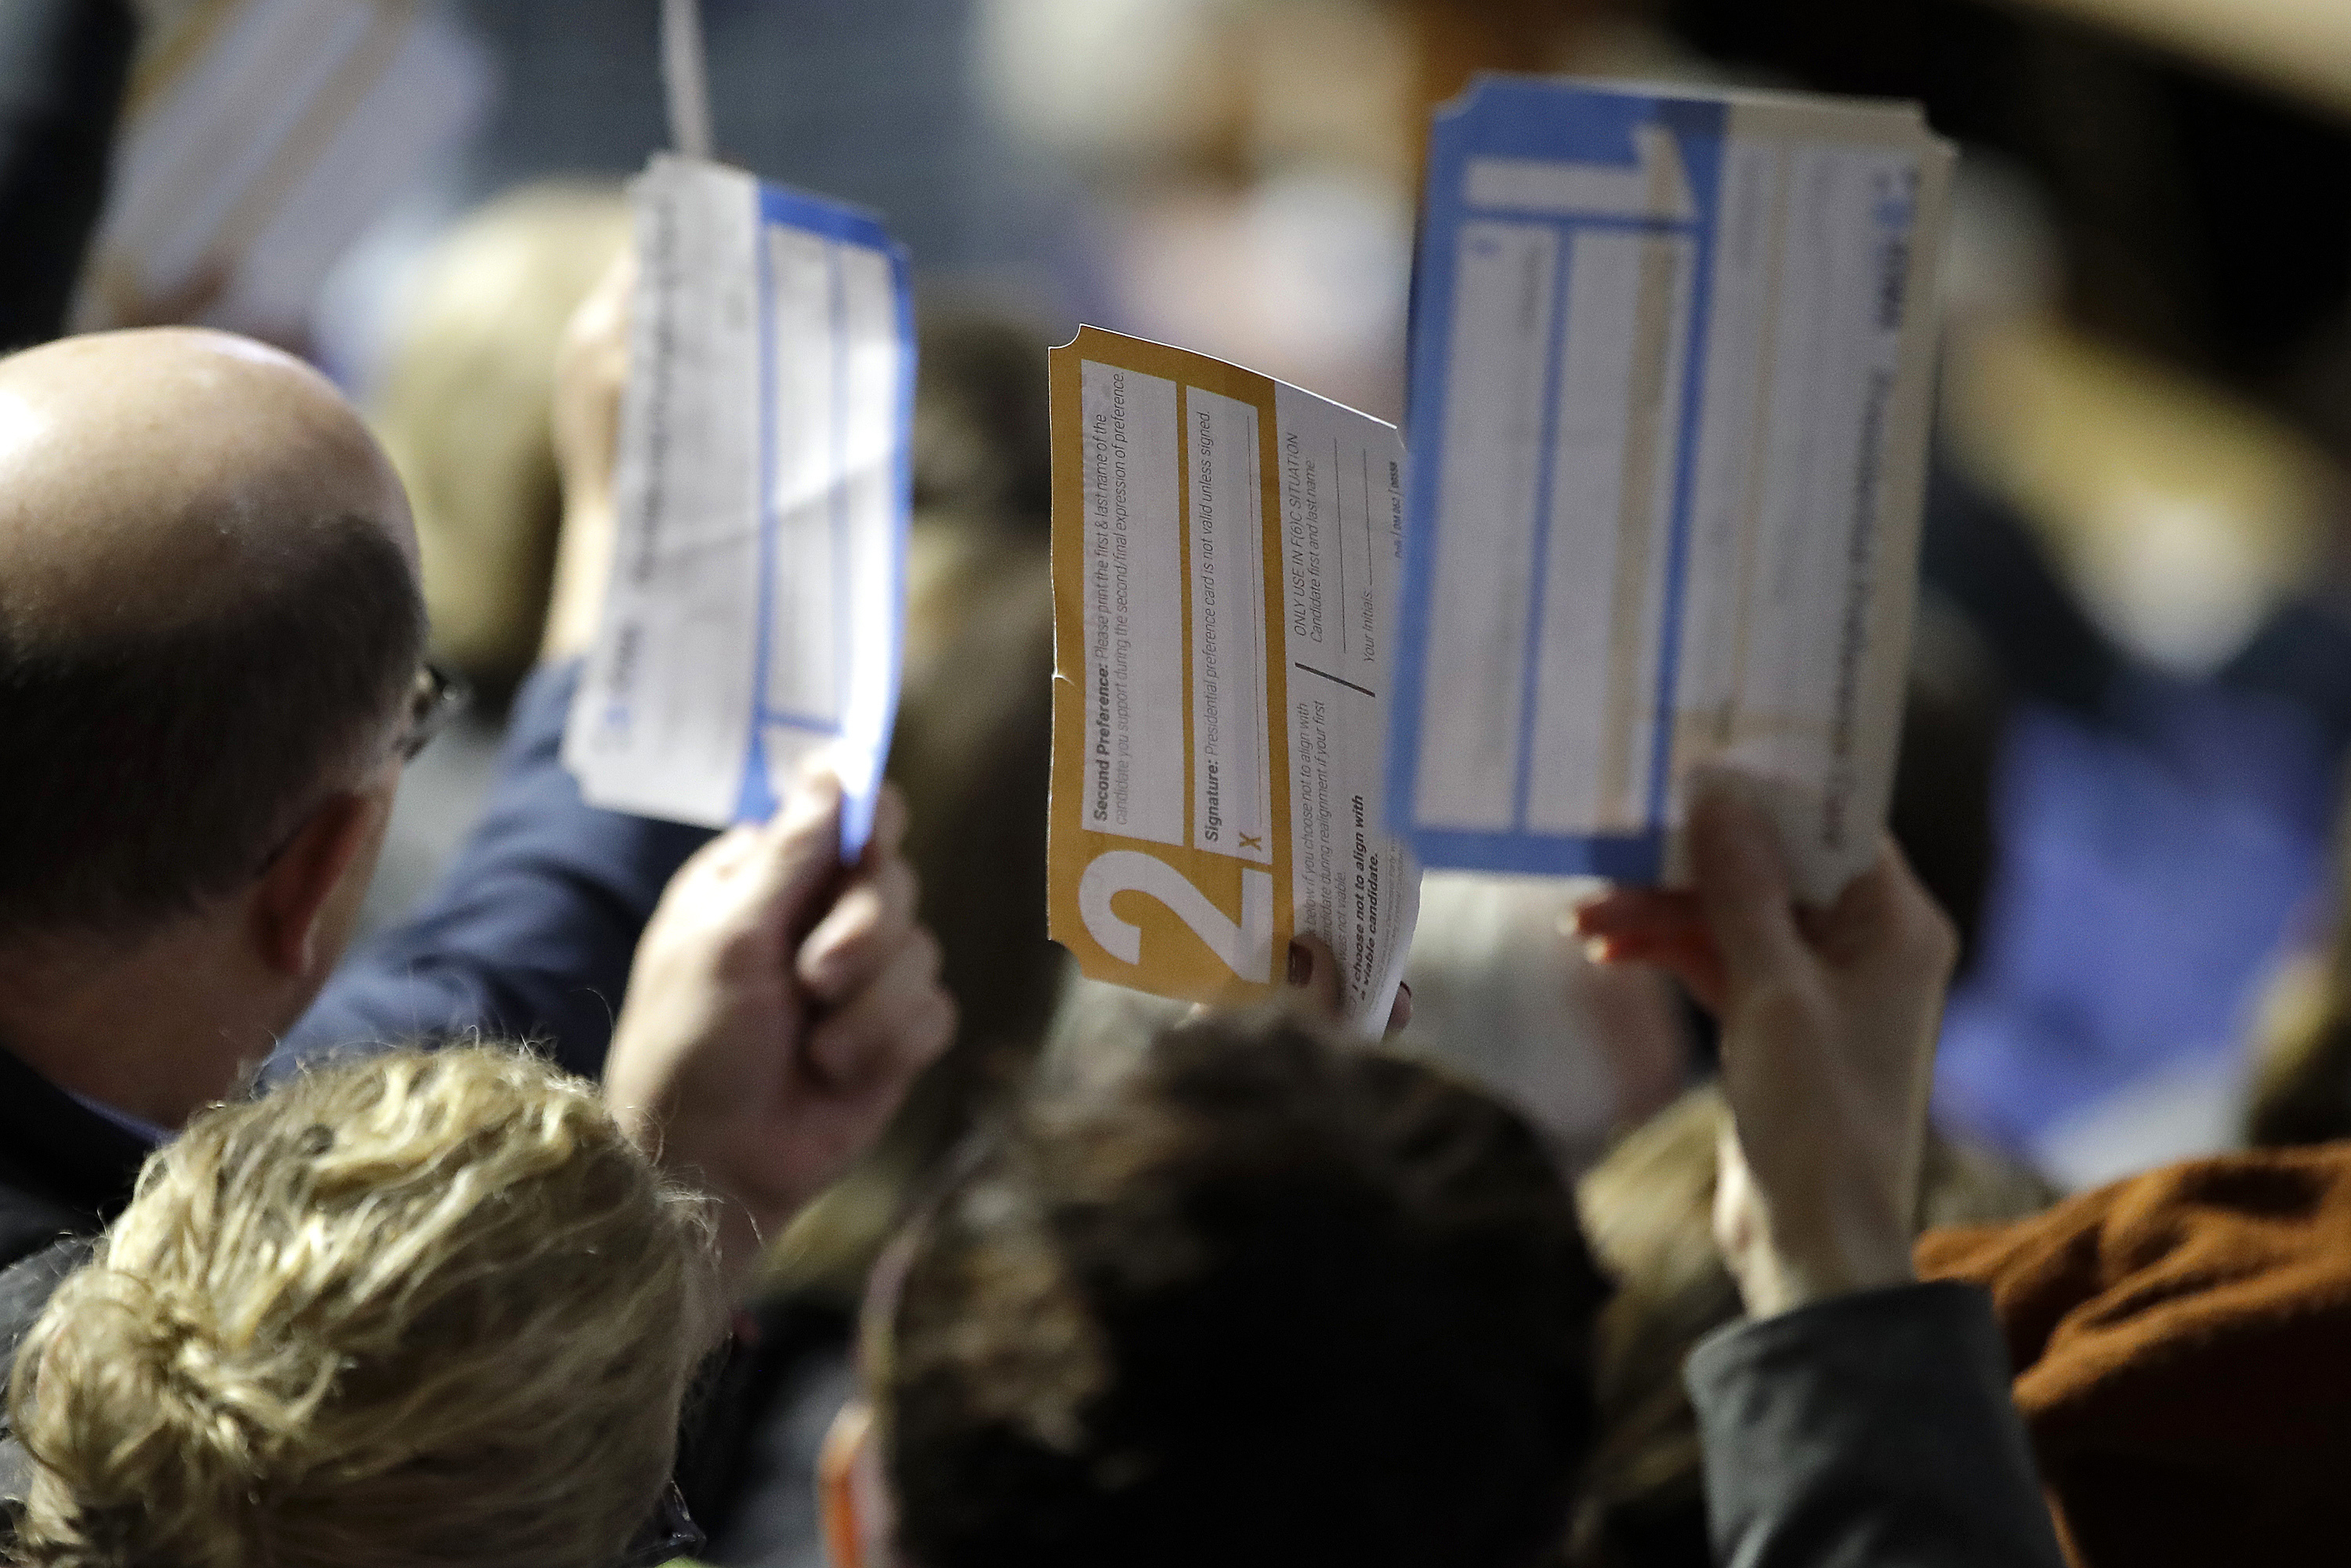 Precinct 68 Iowa Caucus voters seated in the Biden section hold up their first votes as they of the caucus as they are counted at the Knapp Center on the Drake University campus in Des Moines, Iowa, Monday, Feb. 3, 2020. (Gene J. Puskar/AP)